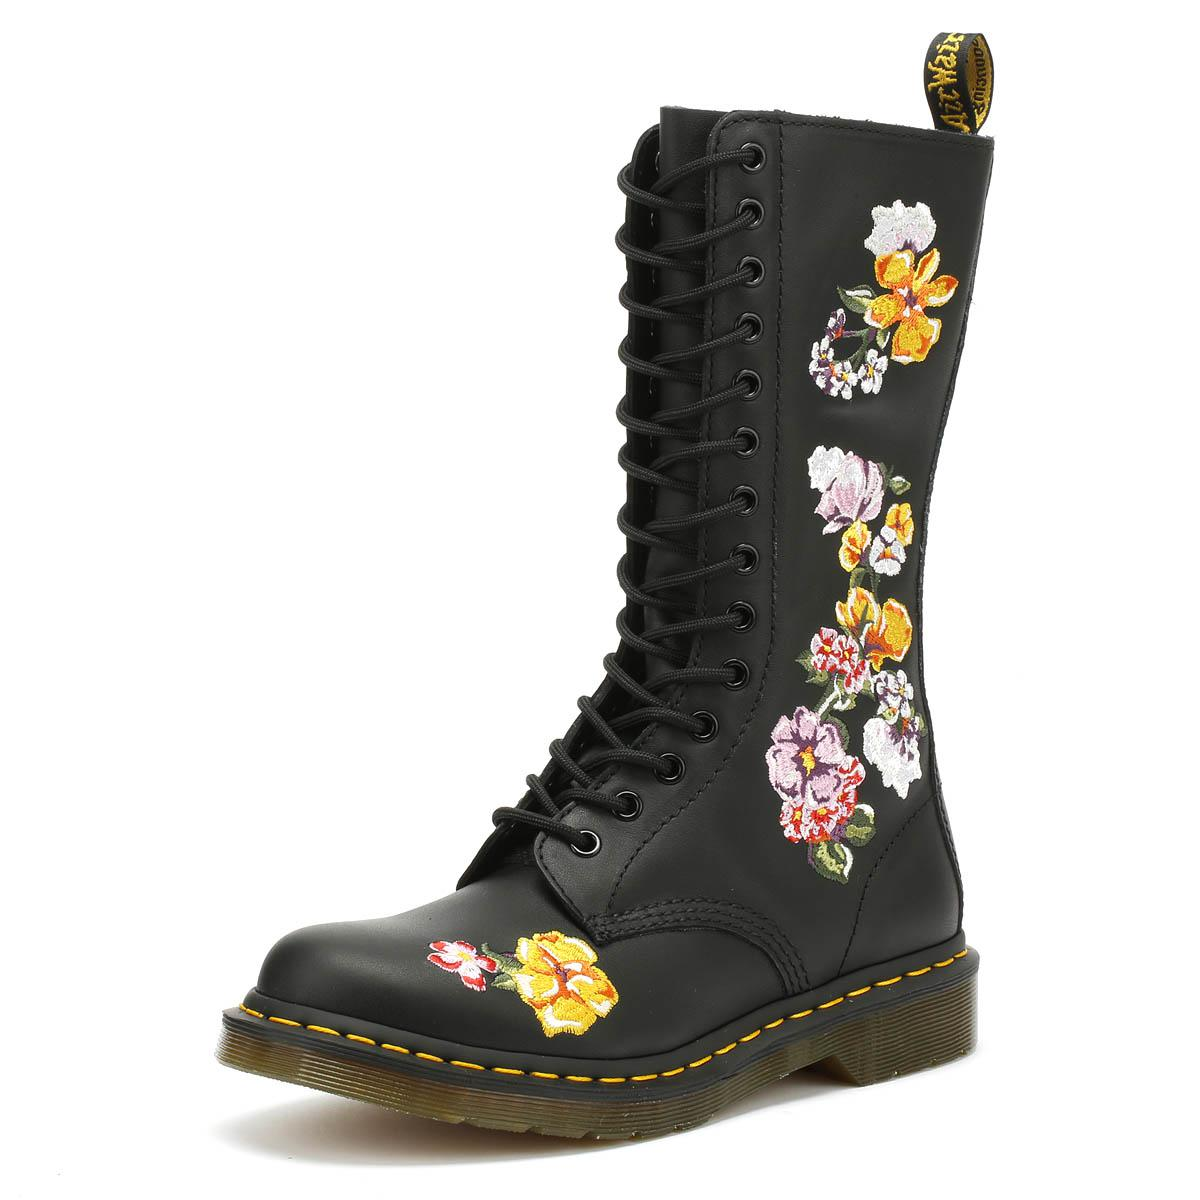 d85a37025983 Dr. Martens Dr. Martens Vonda Ii Womens Softy Black Boots in Black ...